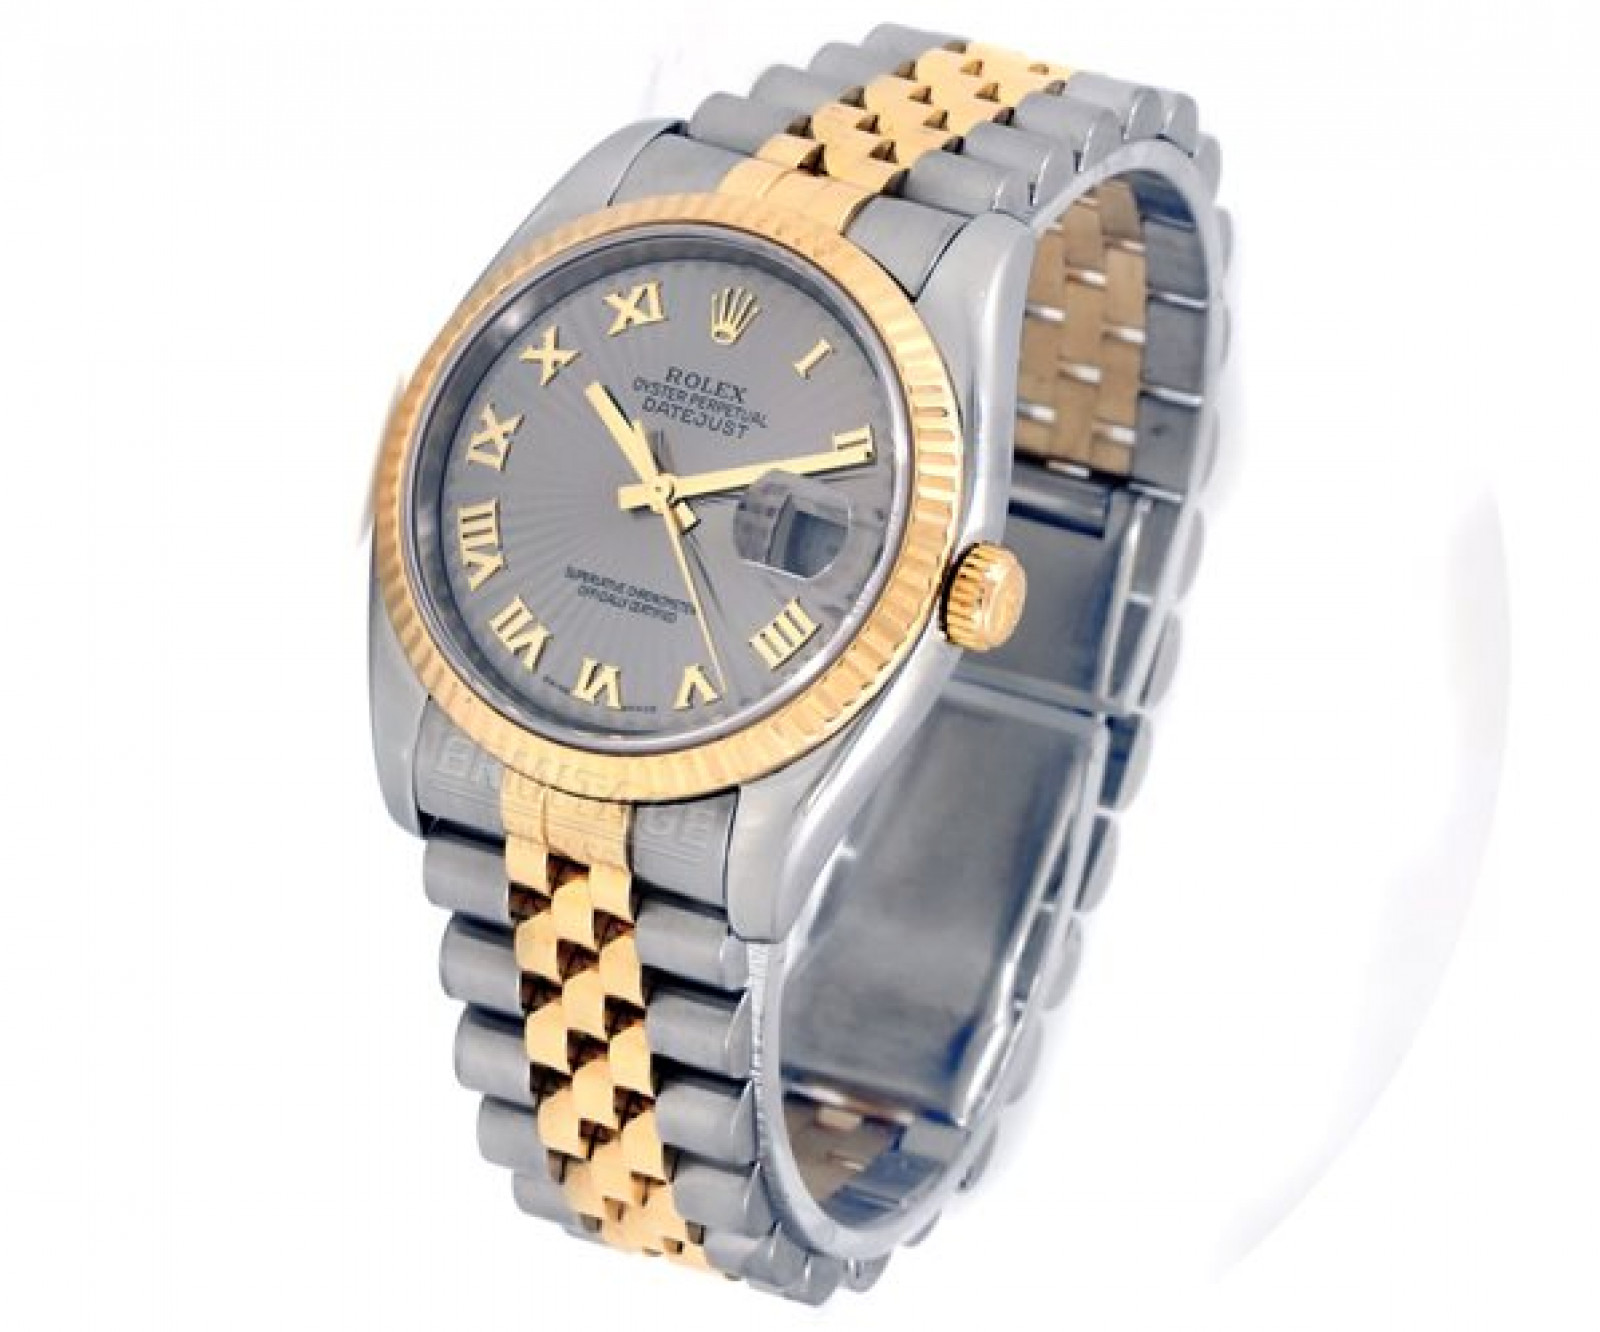 Rolex Datejust 116233 Gold & Steel with Slate Dial & Roman Markers